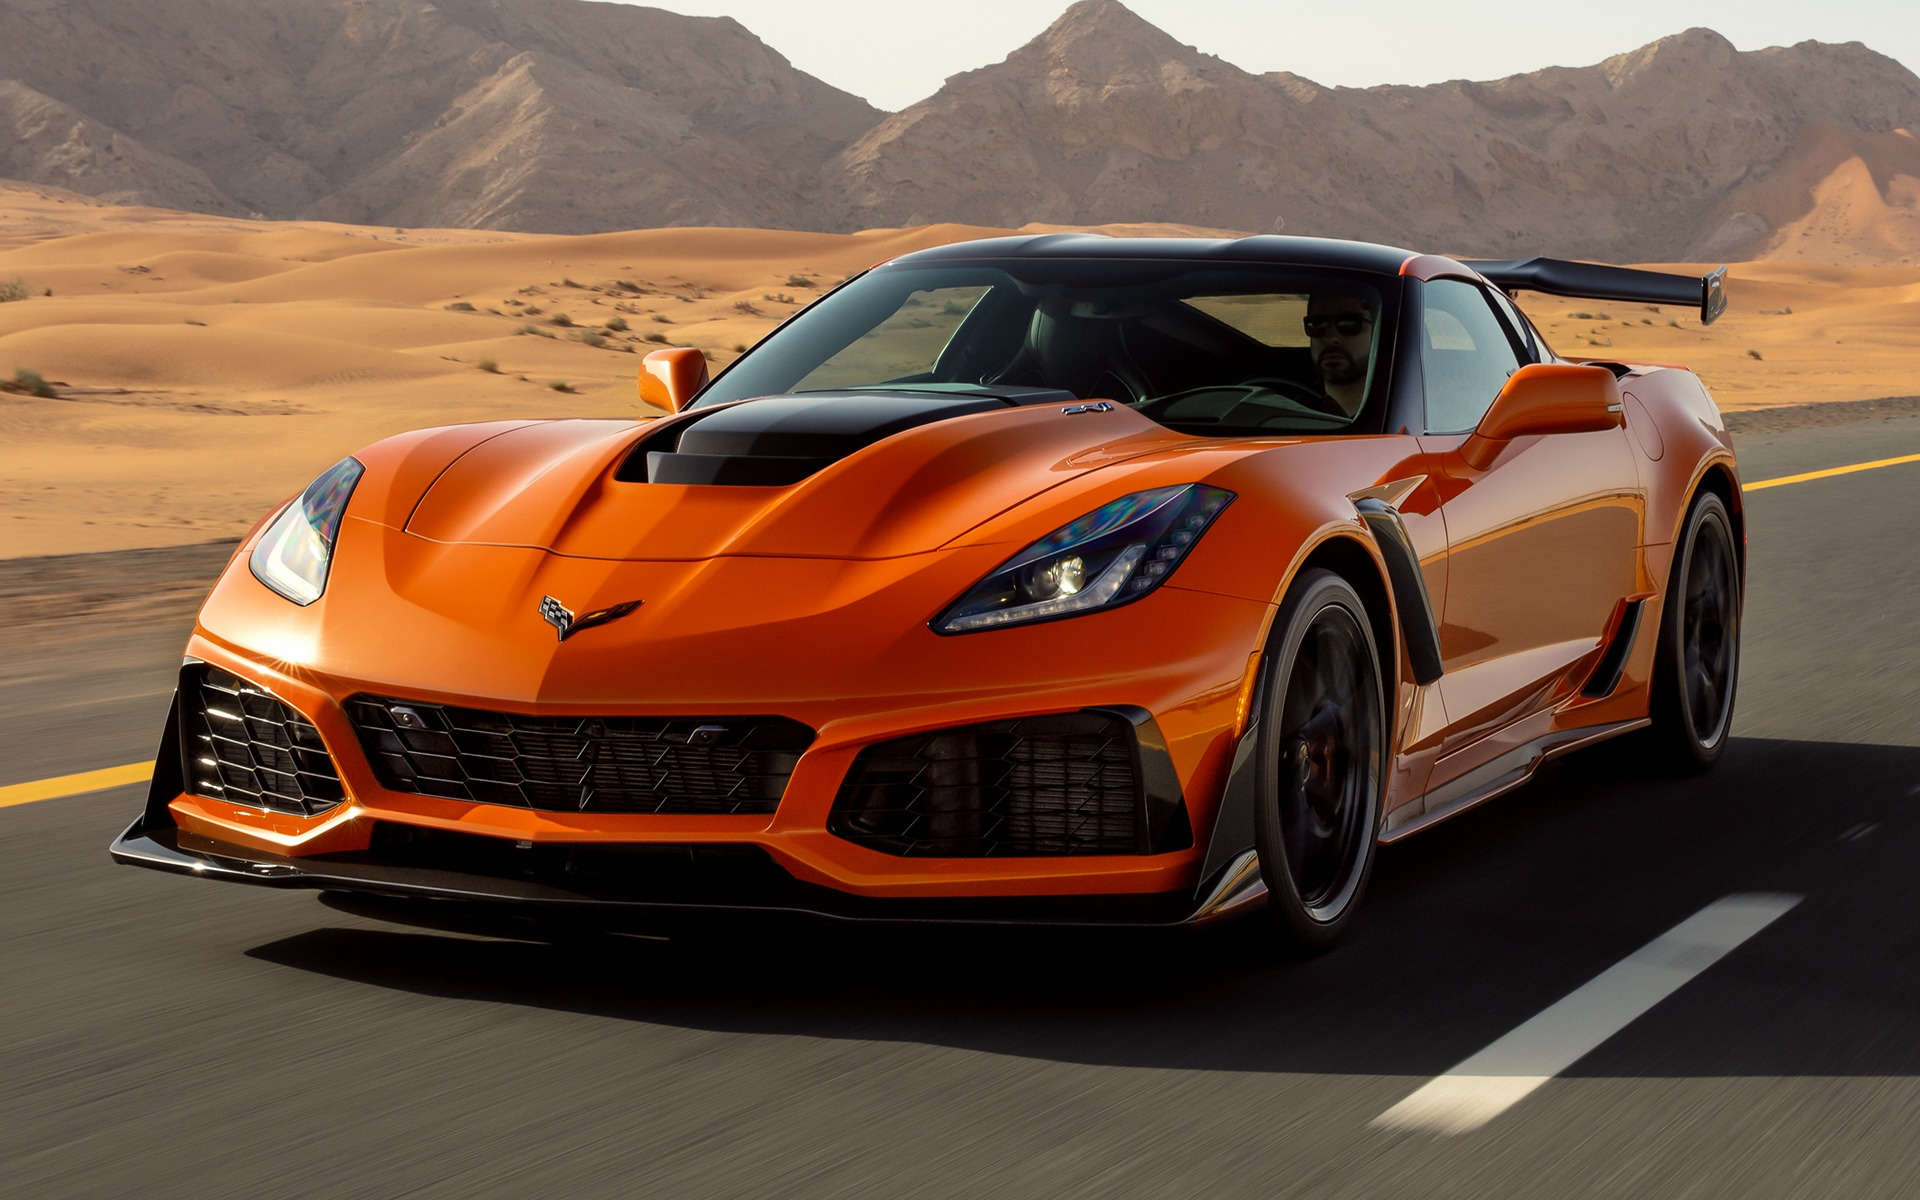 Chevrolet Corvette ZR1 (2018) Wallpapers and HD Images ...